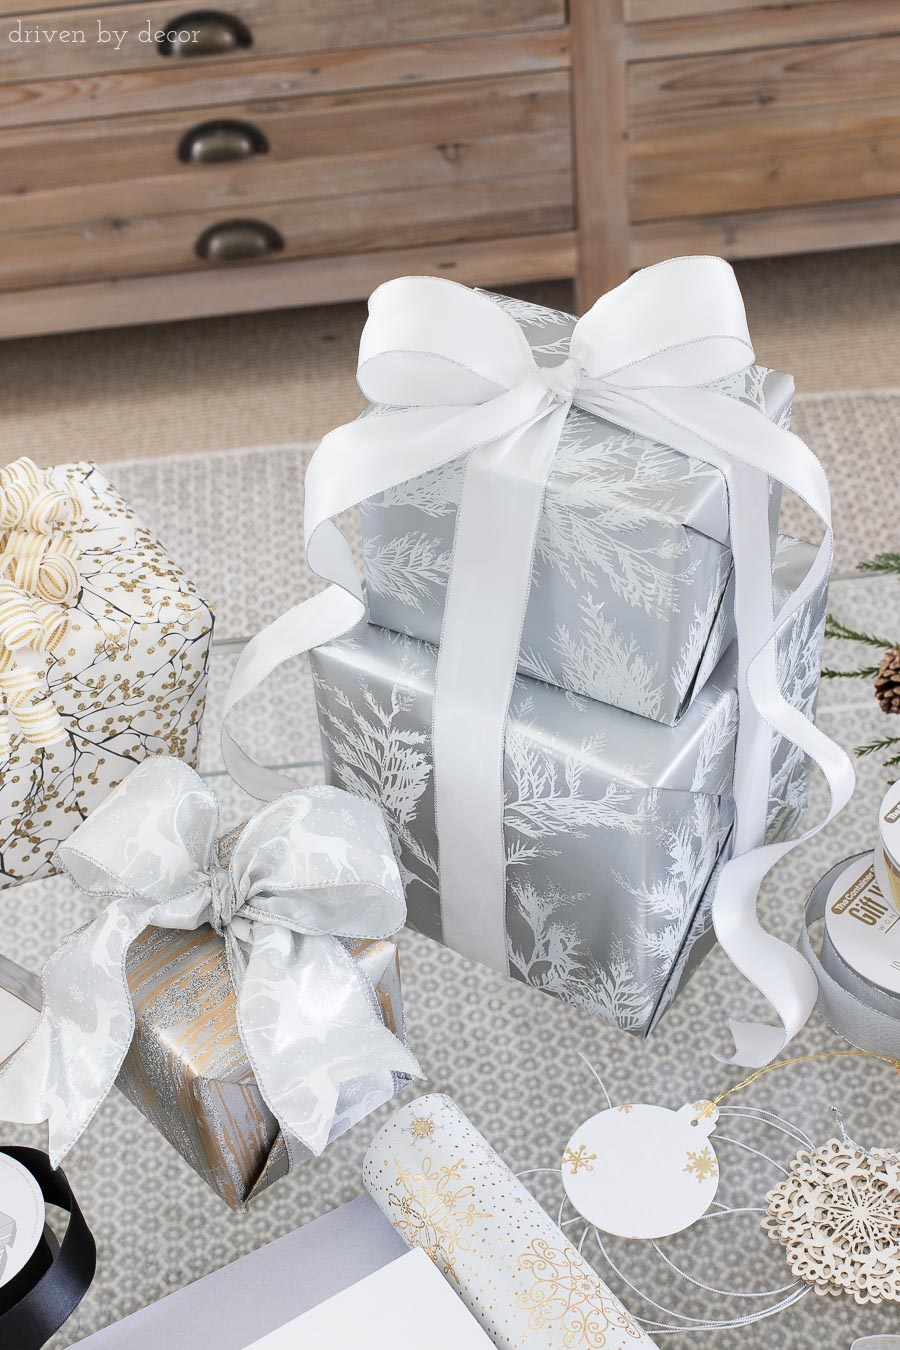 Stack two presents together and tie them with a cascading bow! One of the great easy gift wrapping ideas in this post!